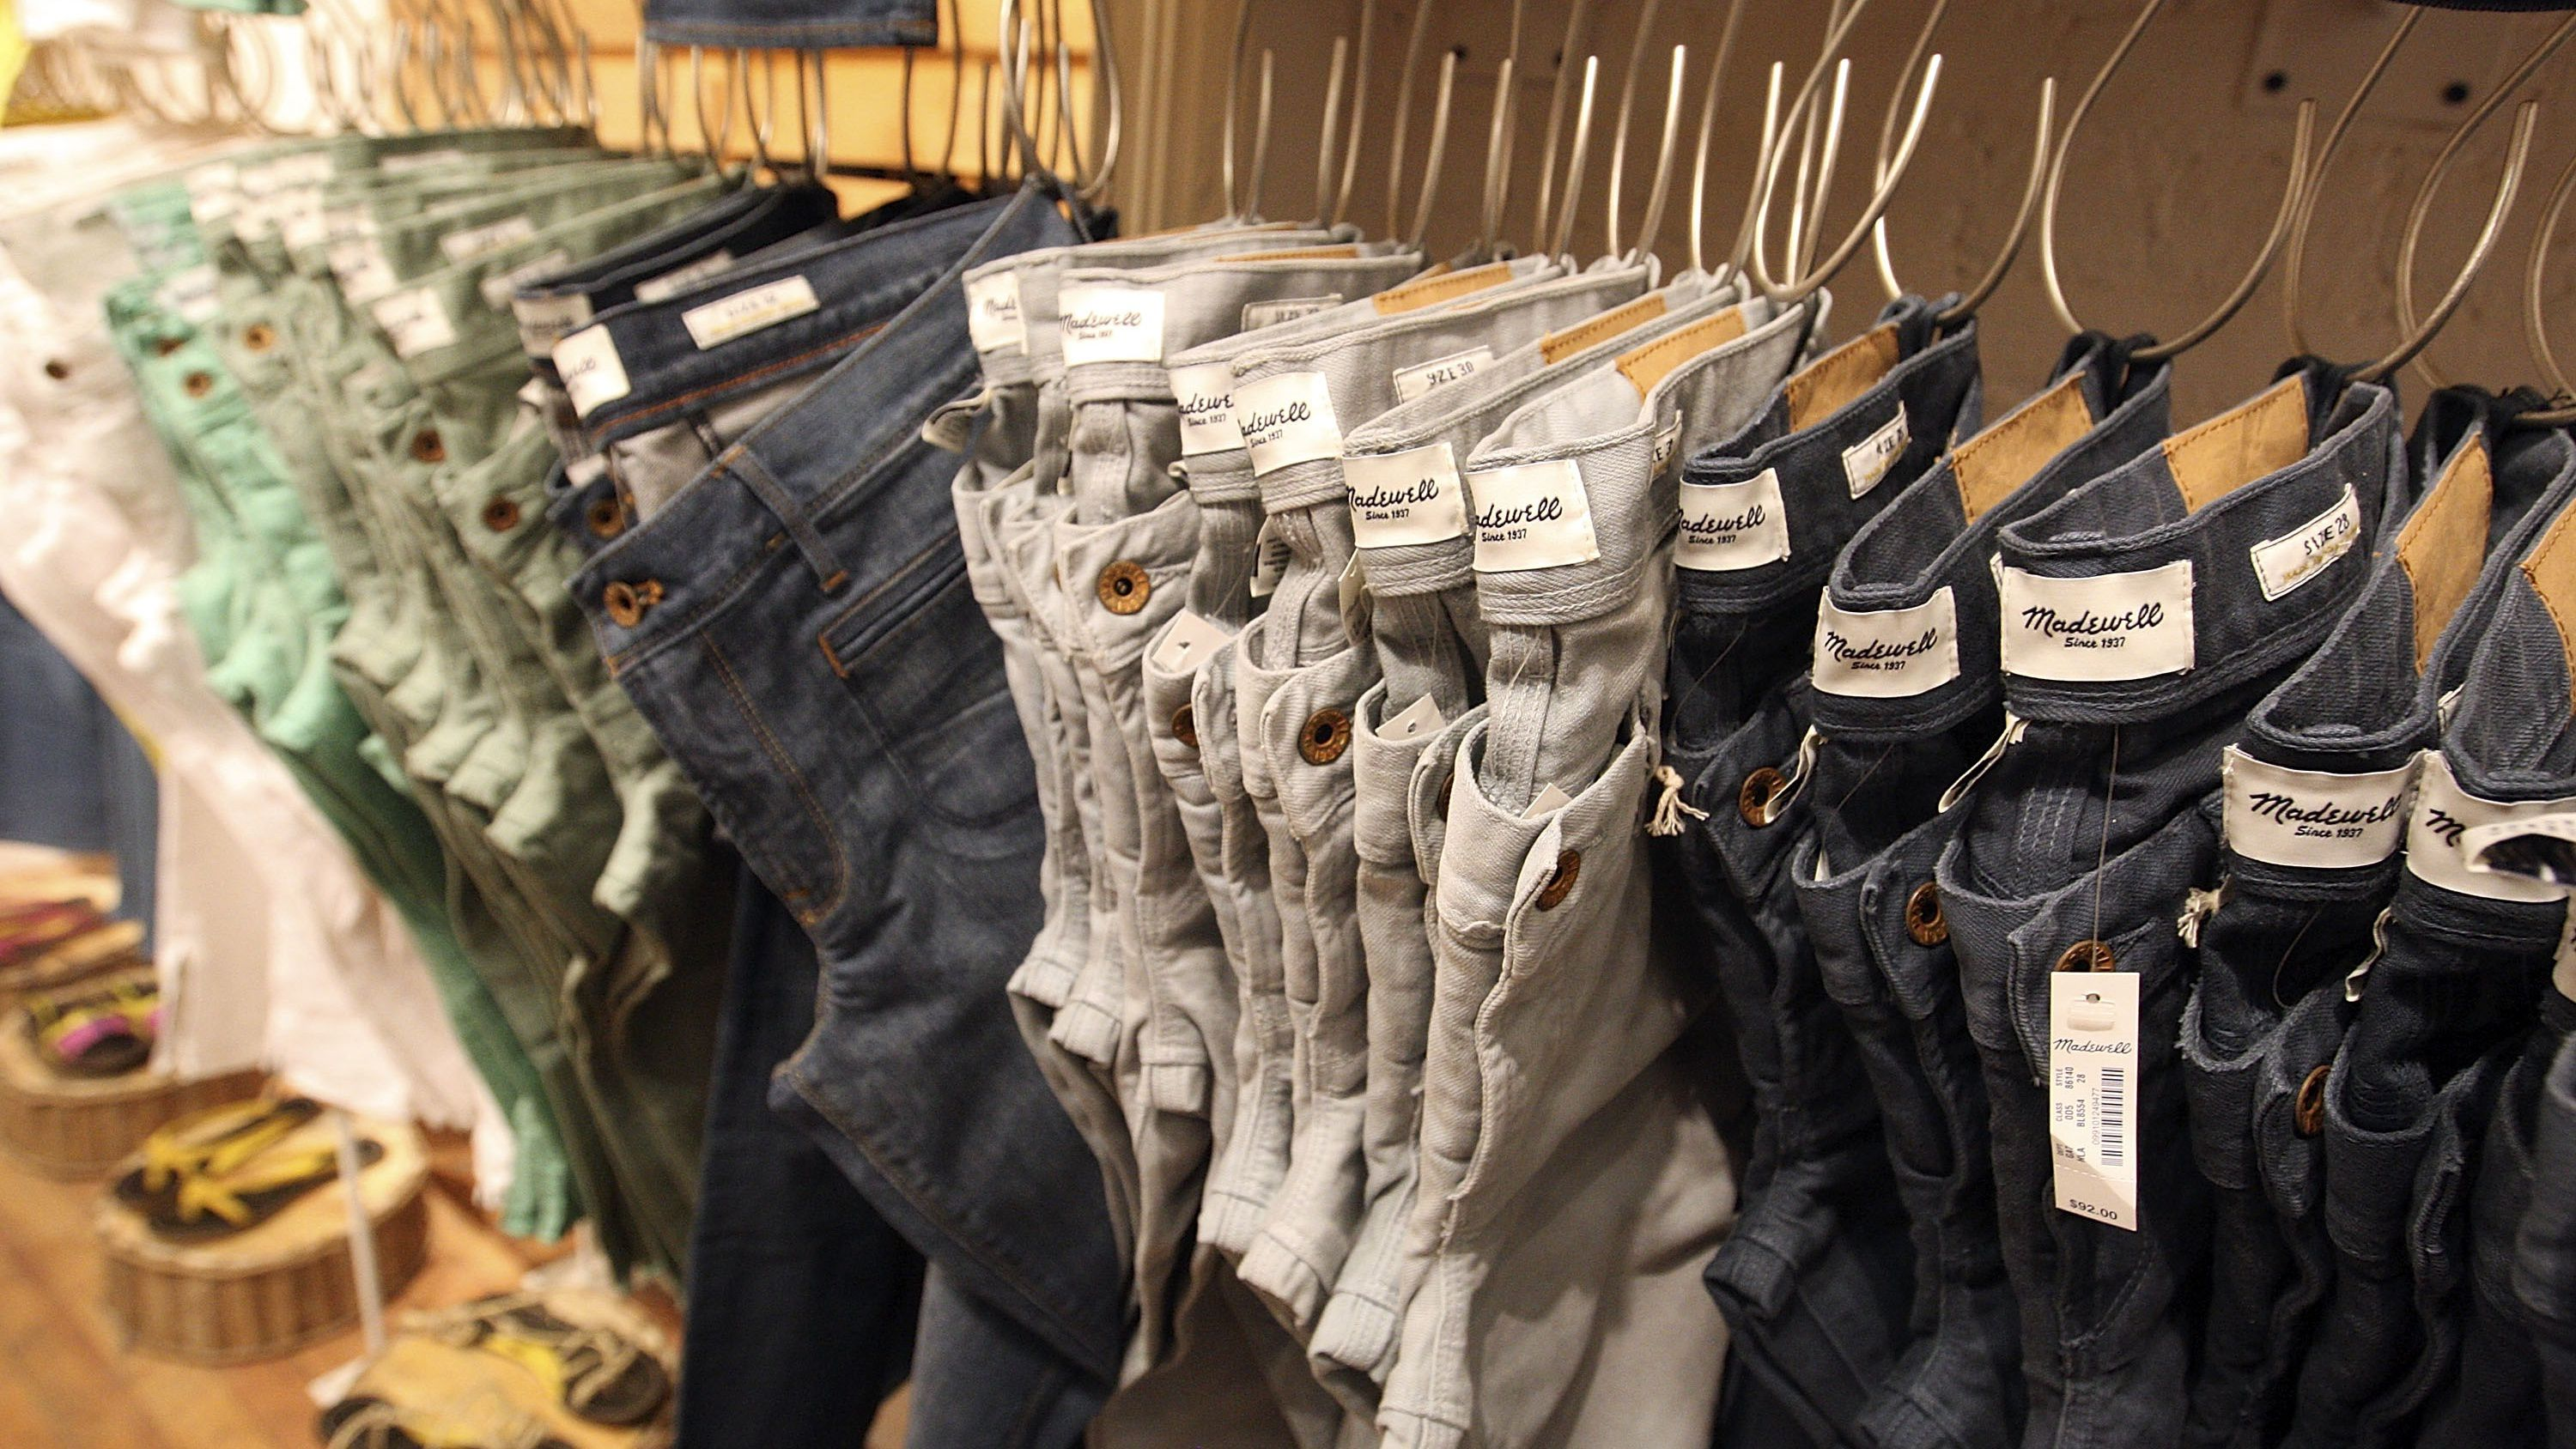 Madewell's IPO comes as blue jeans rebound